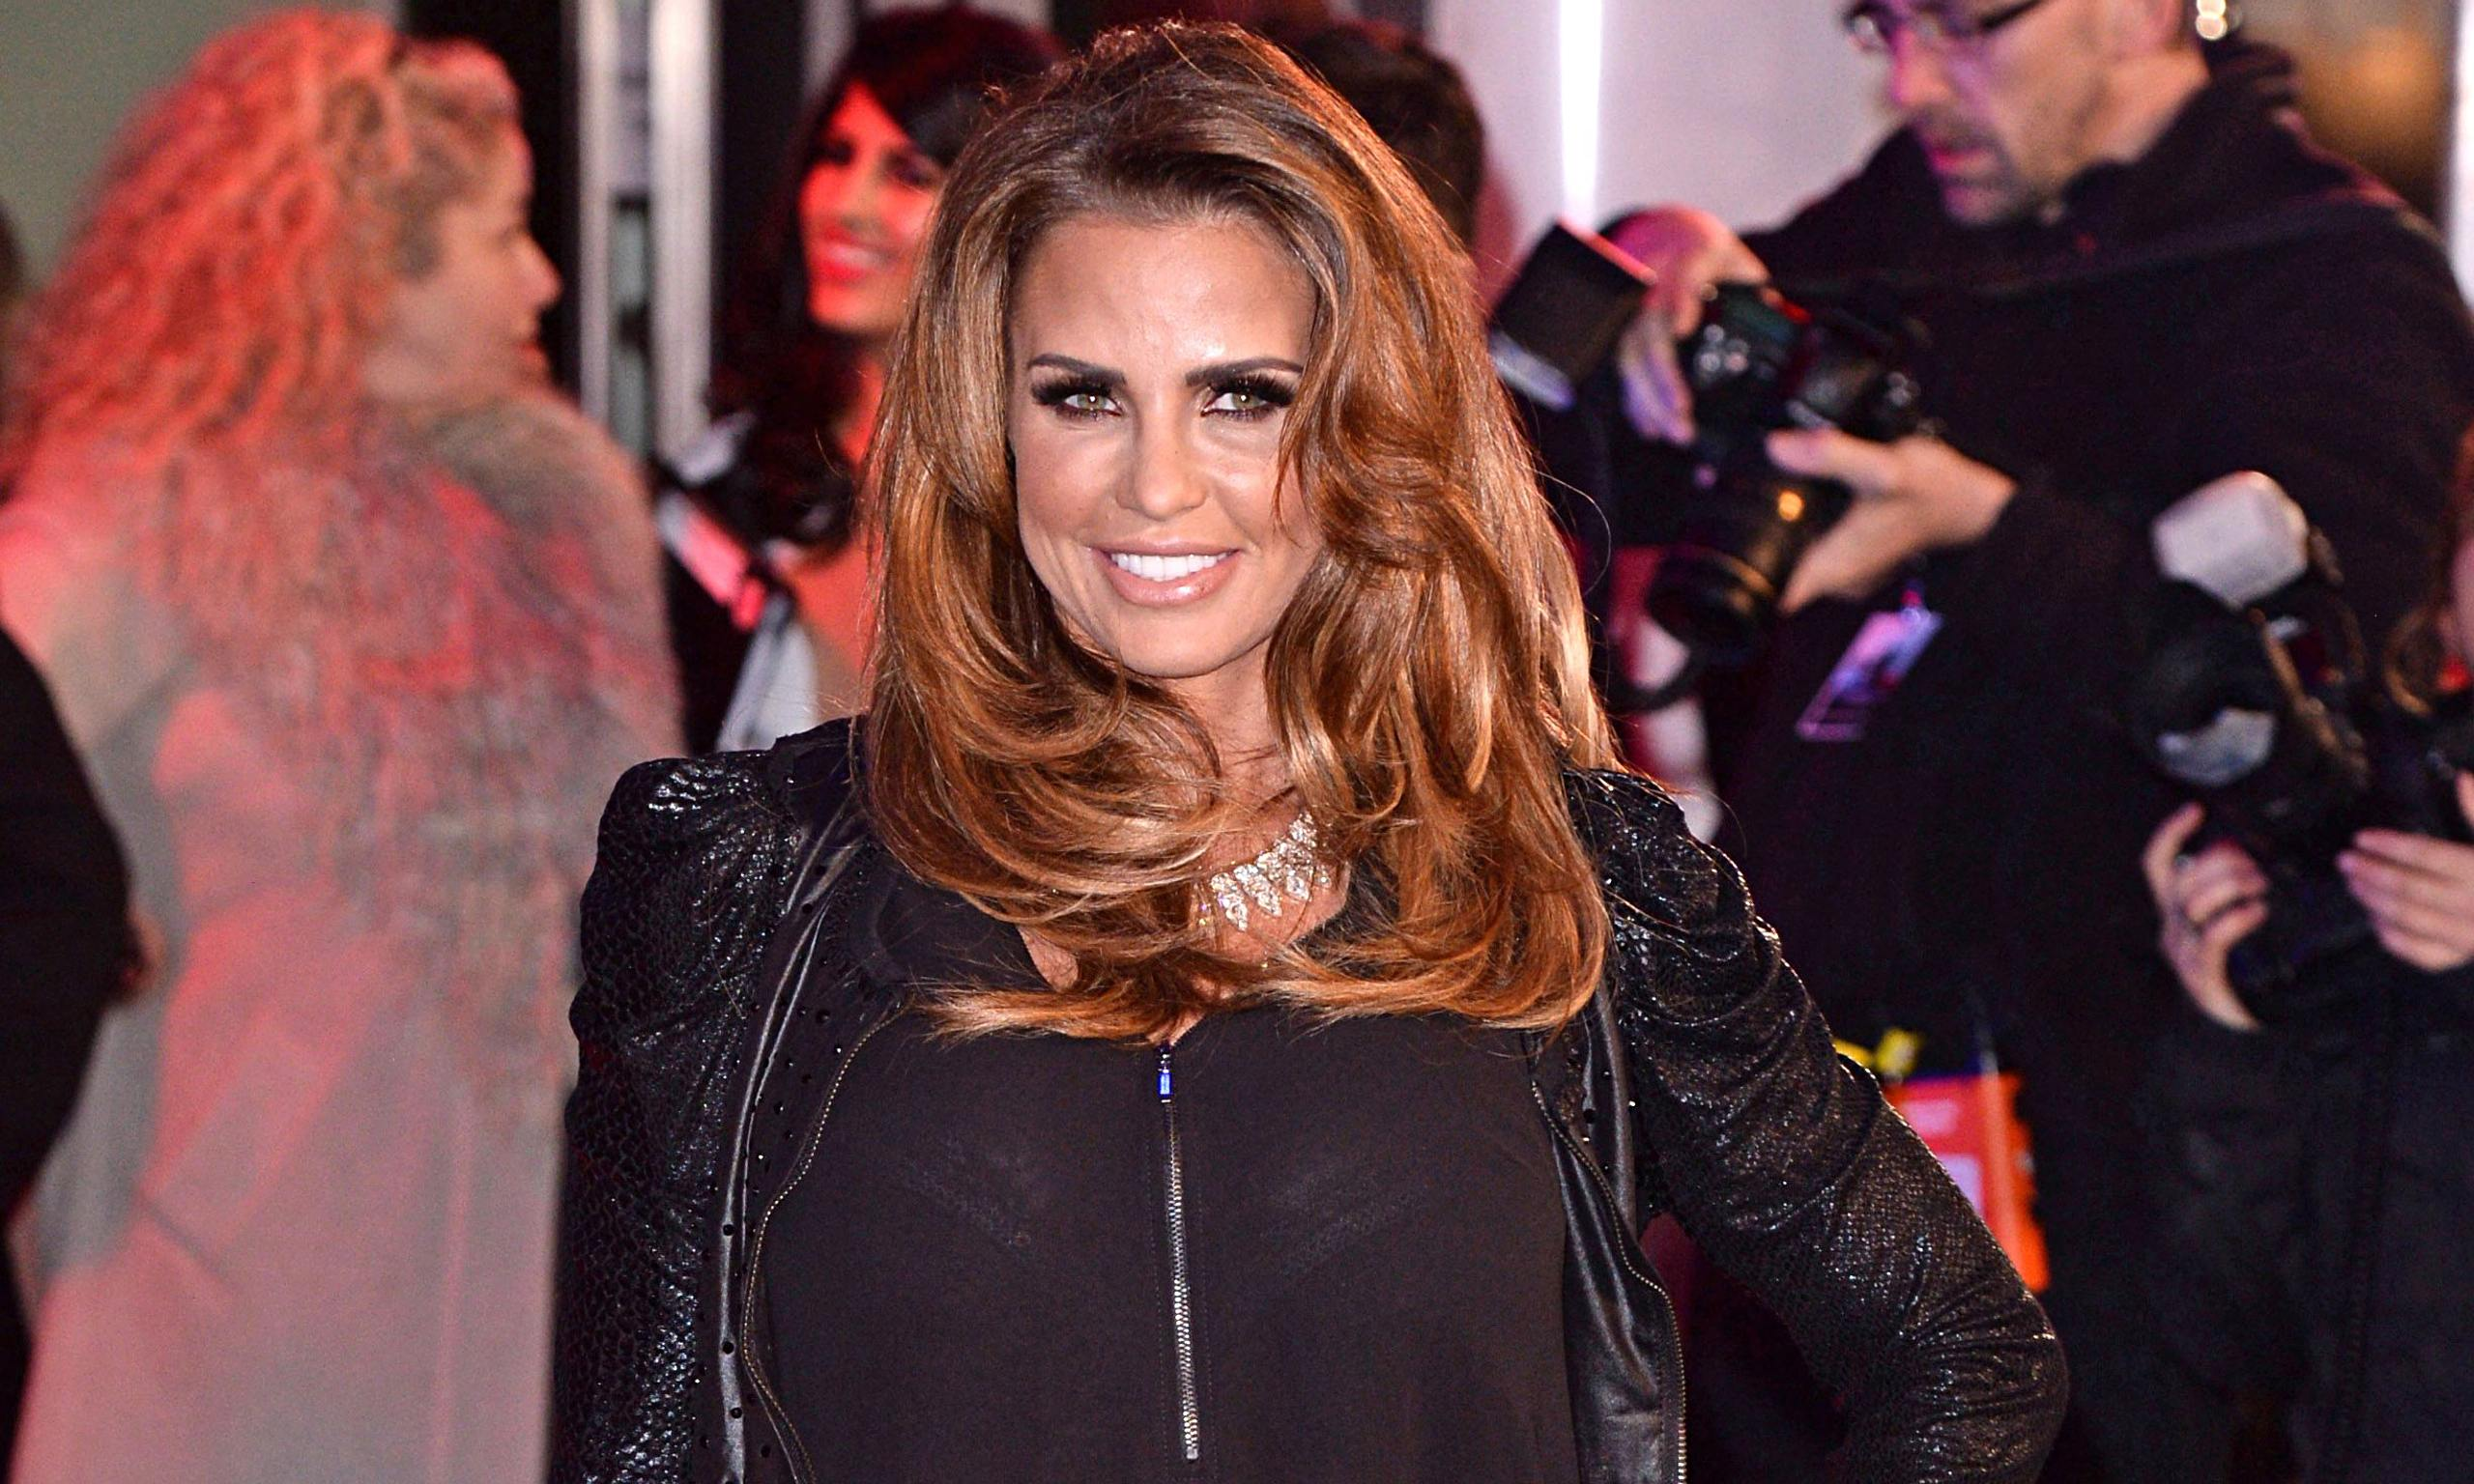 Katie Price's Twitter putdown packs a punch in 92 characters - Social